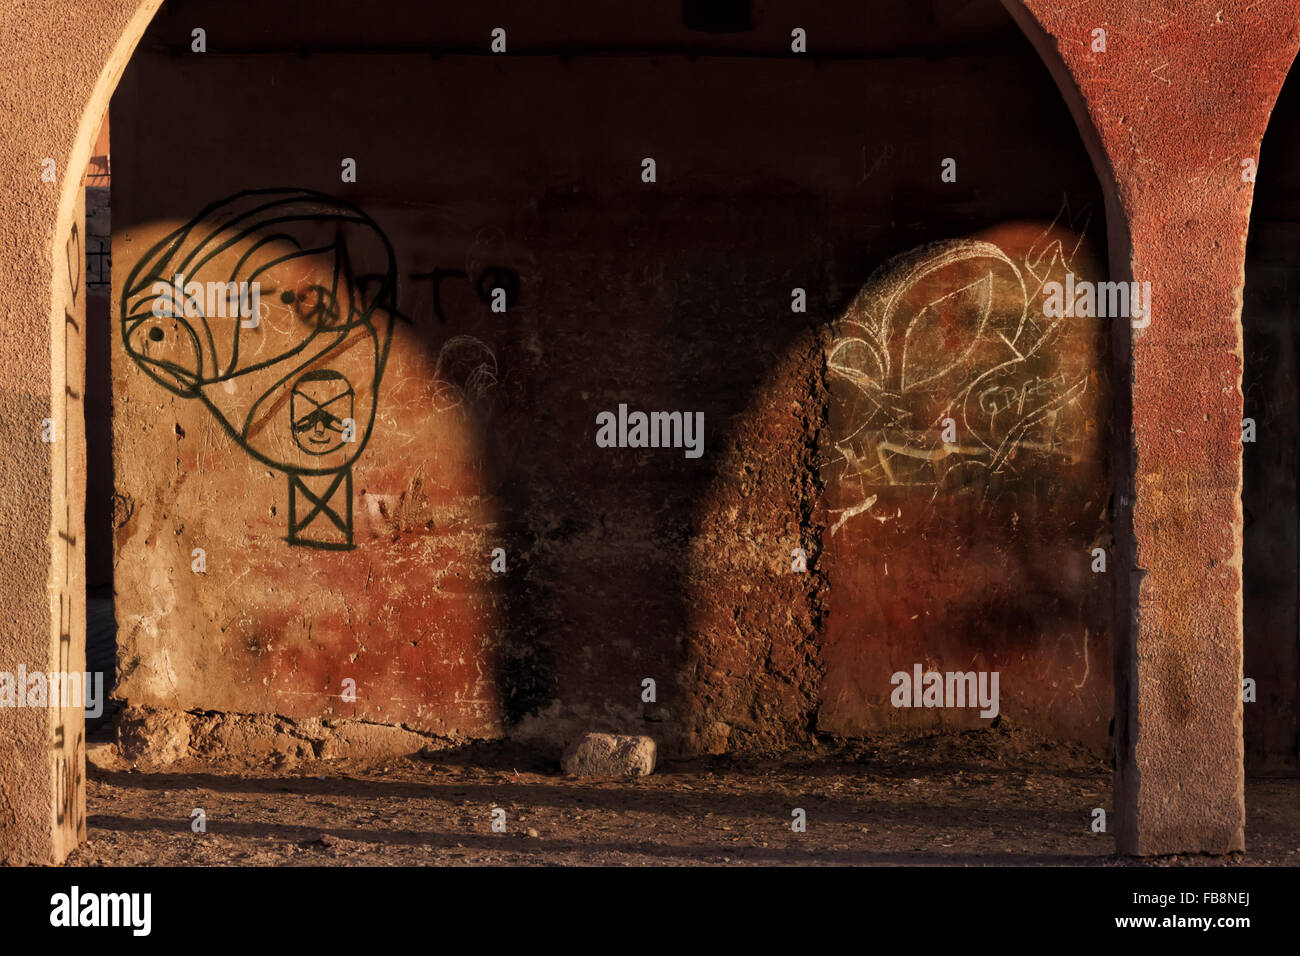 Graffiti on a old rural building in Morocco. - Stock Image